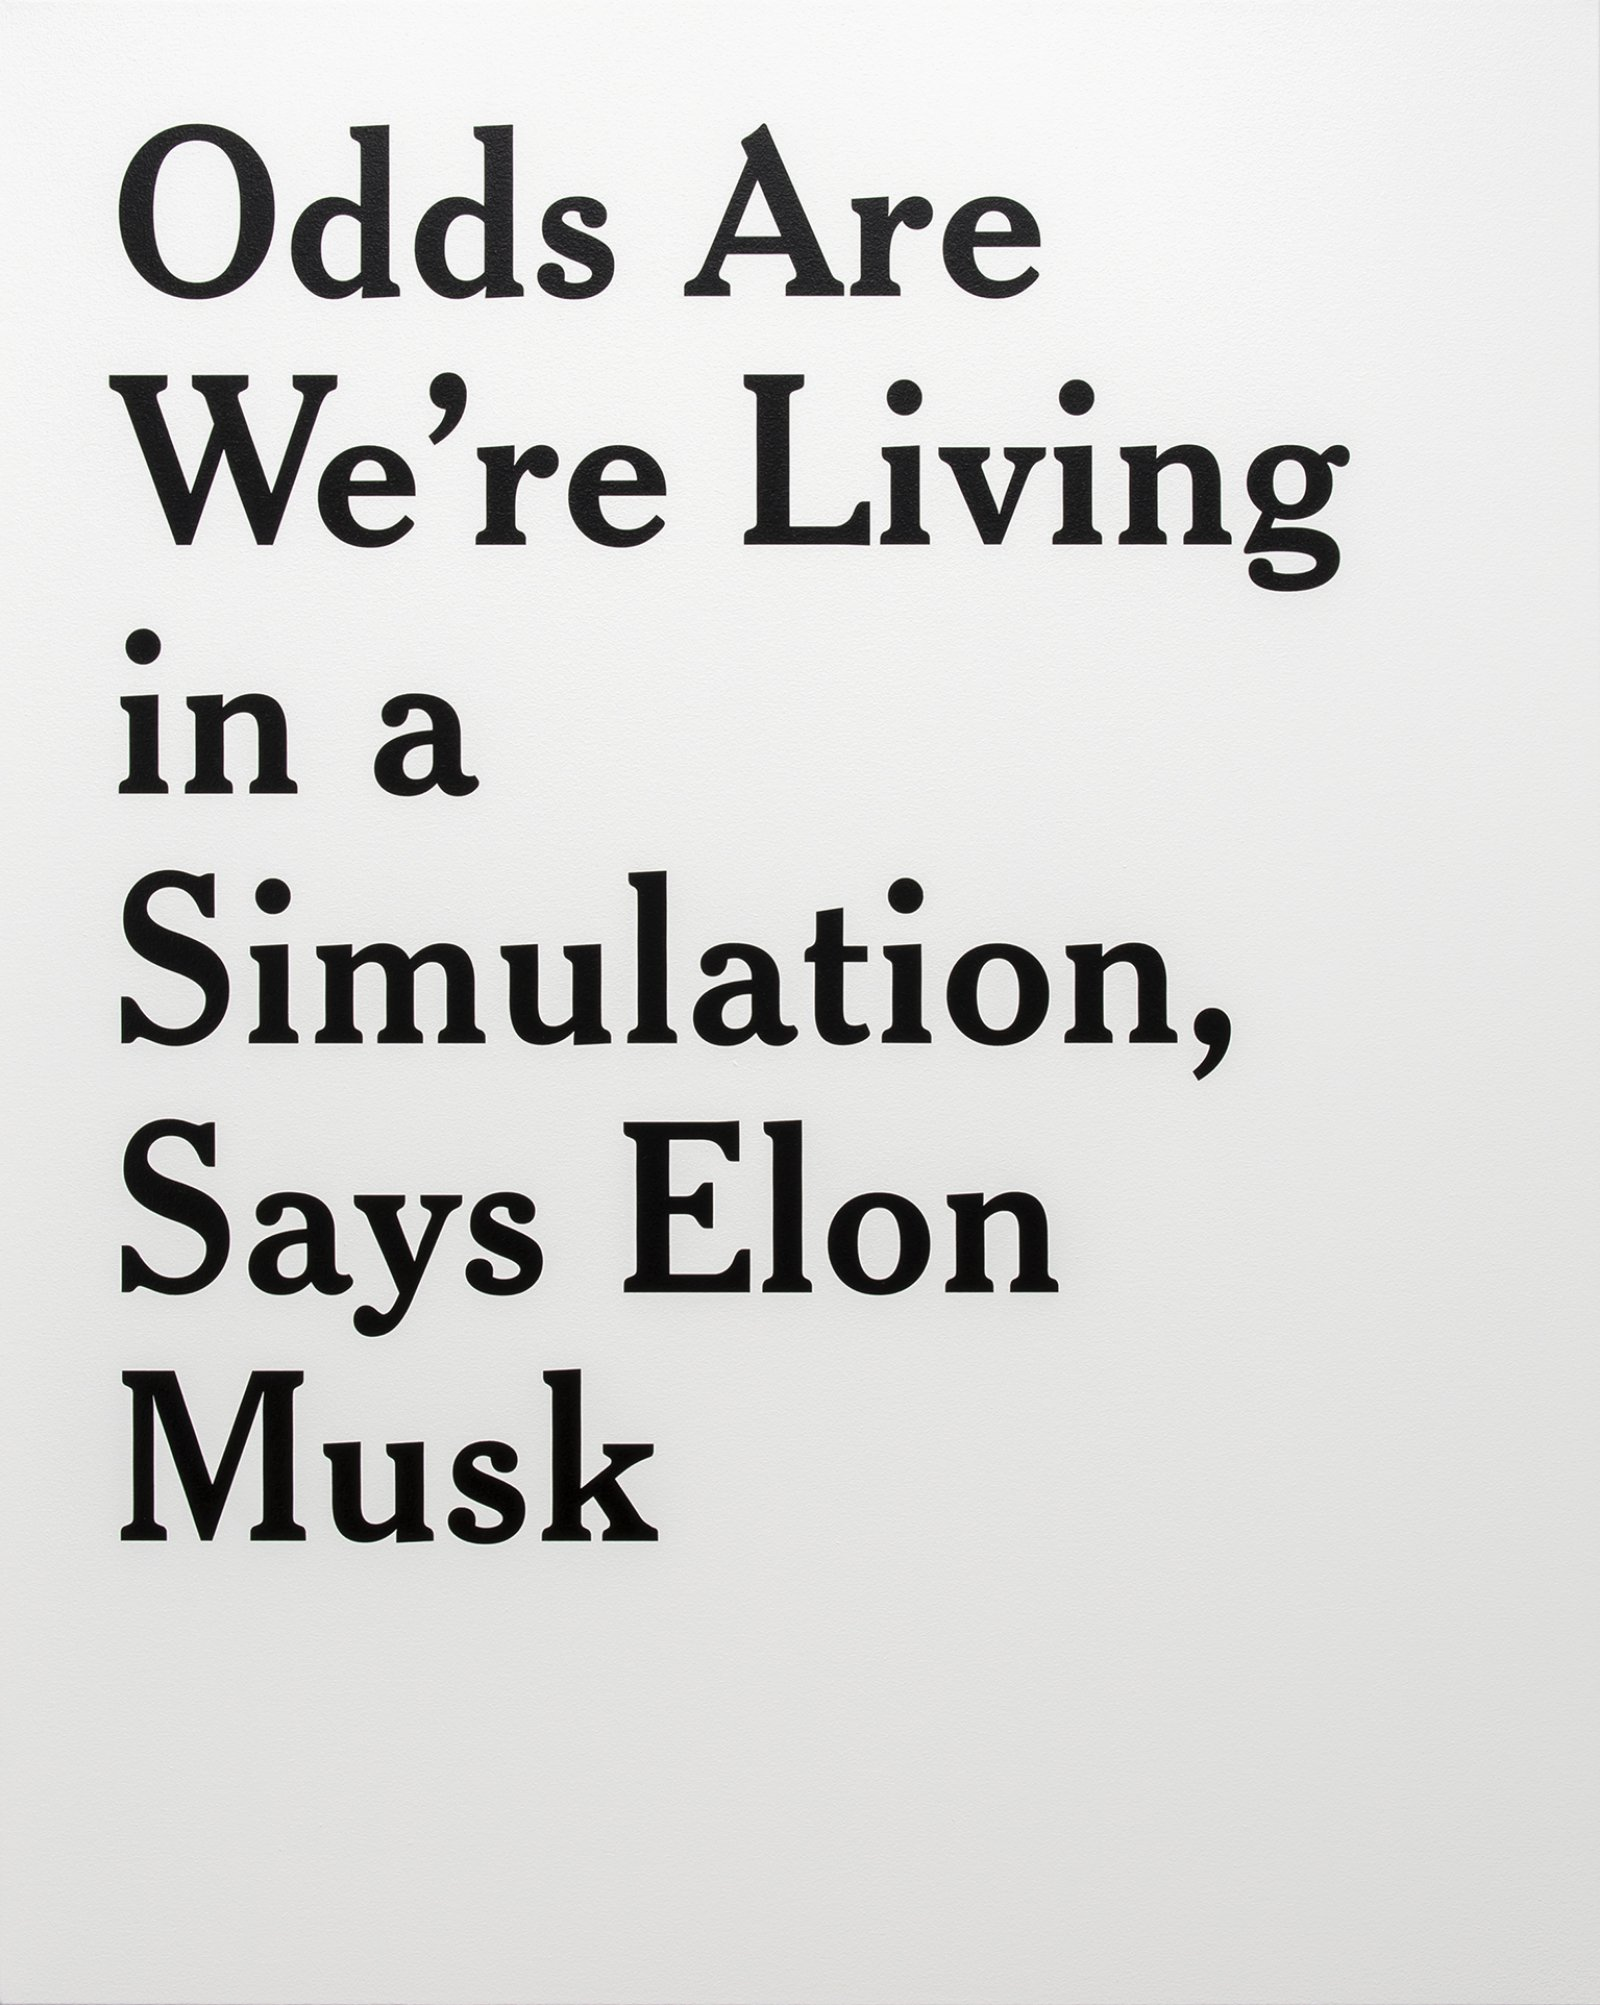 Ron Terada, Odds Are We're Living in a Simulation, Says Elon Musk, 2 June 2016, 4:08 am, 2017, acrylic on canvas, 60 x 48 in. (152 x 122 cm) by Ron Terada